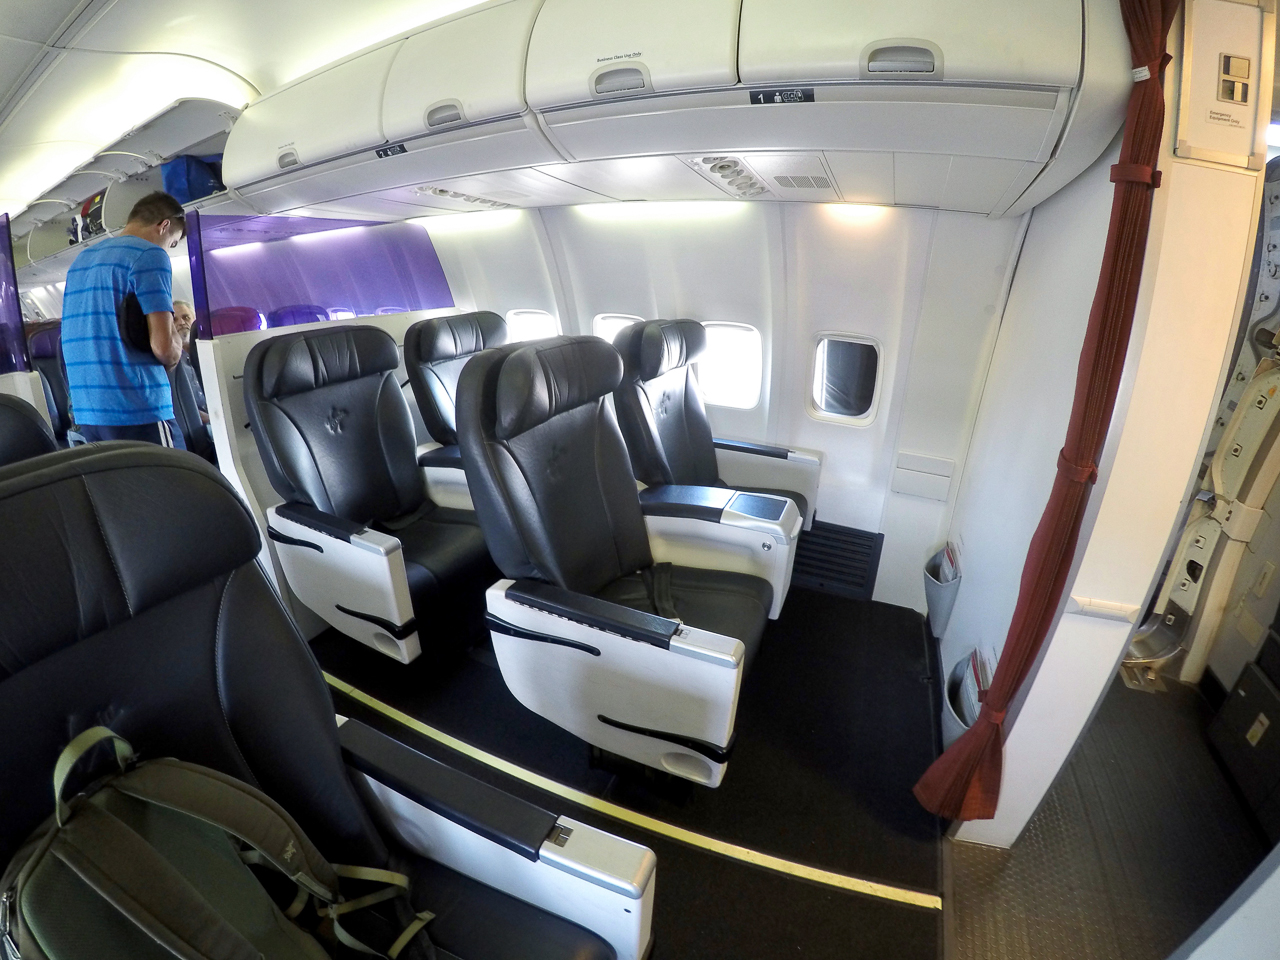 Vrigin Australia Business Class